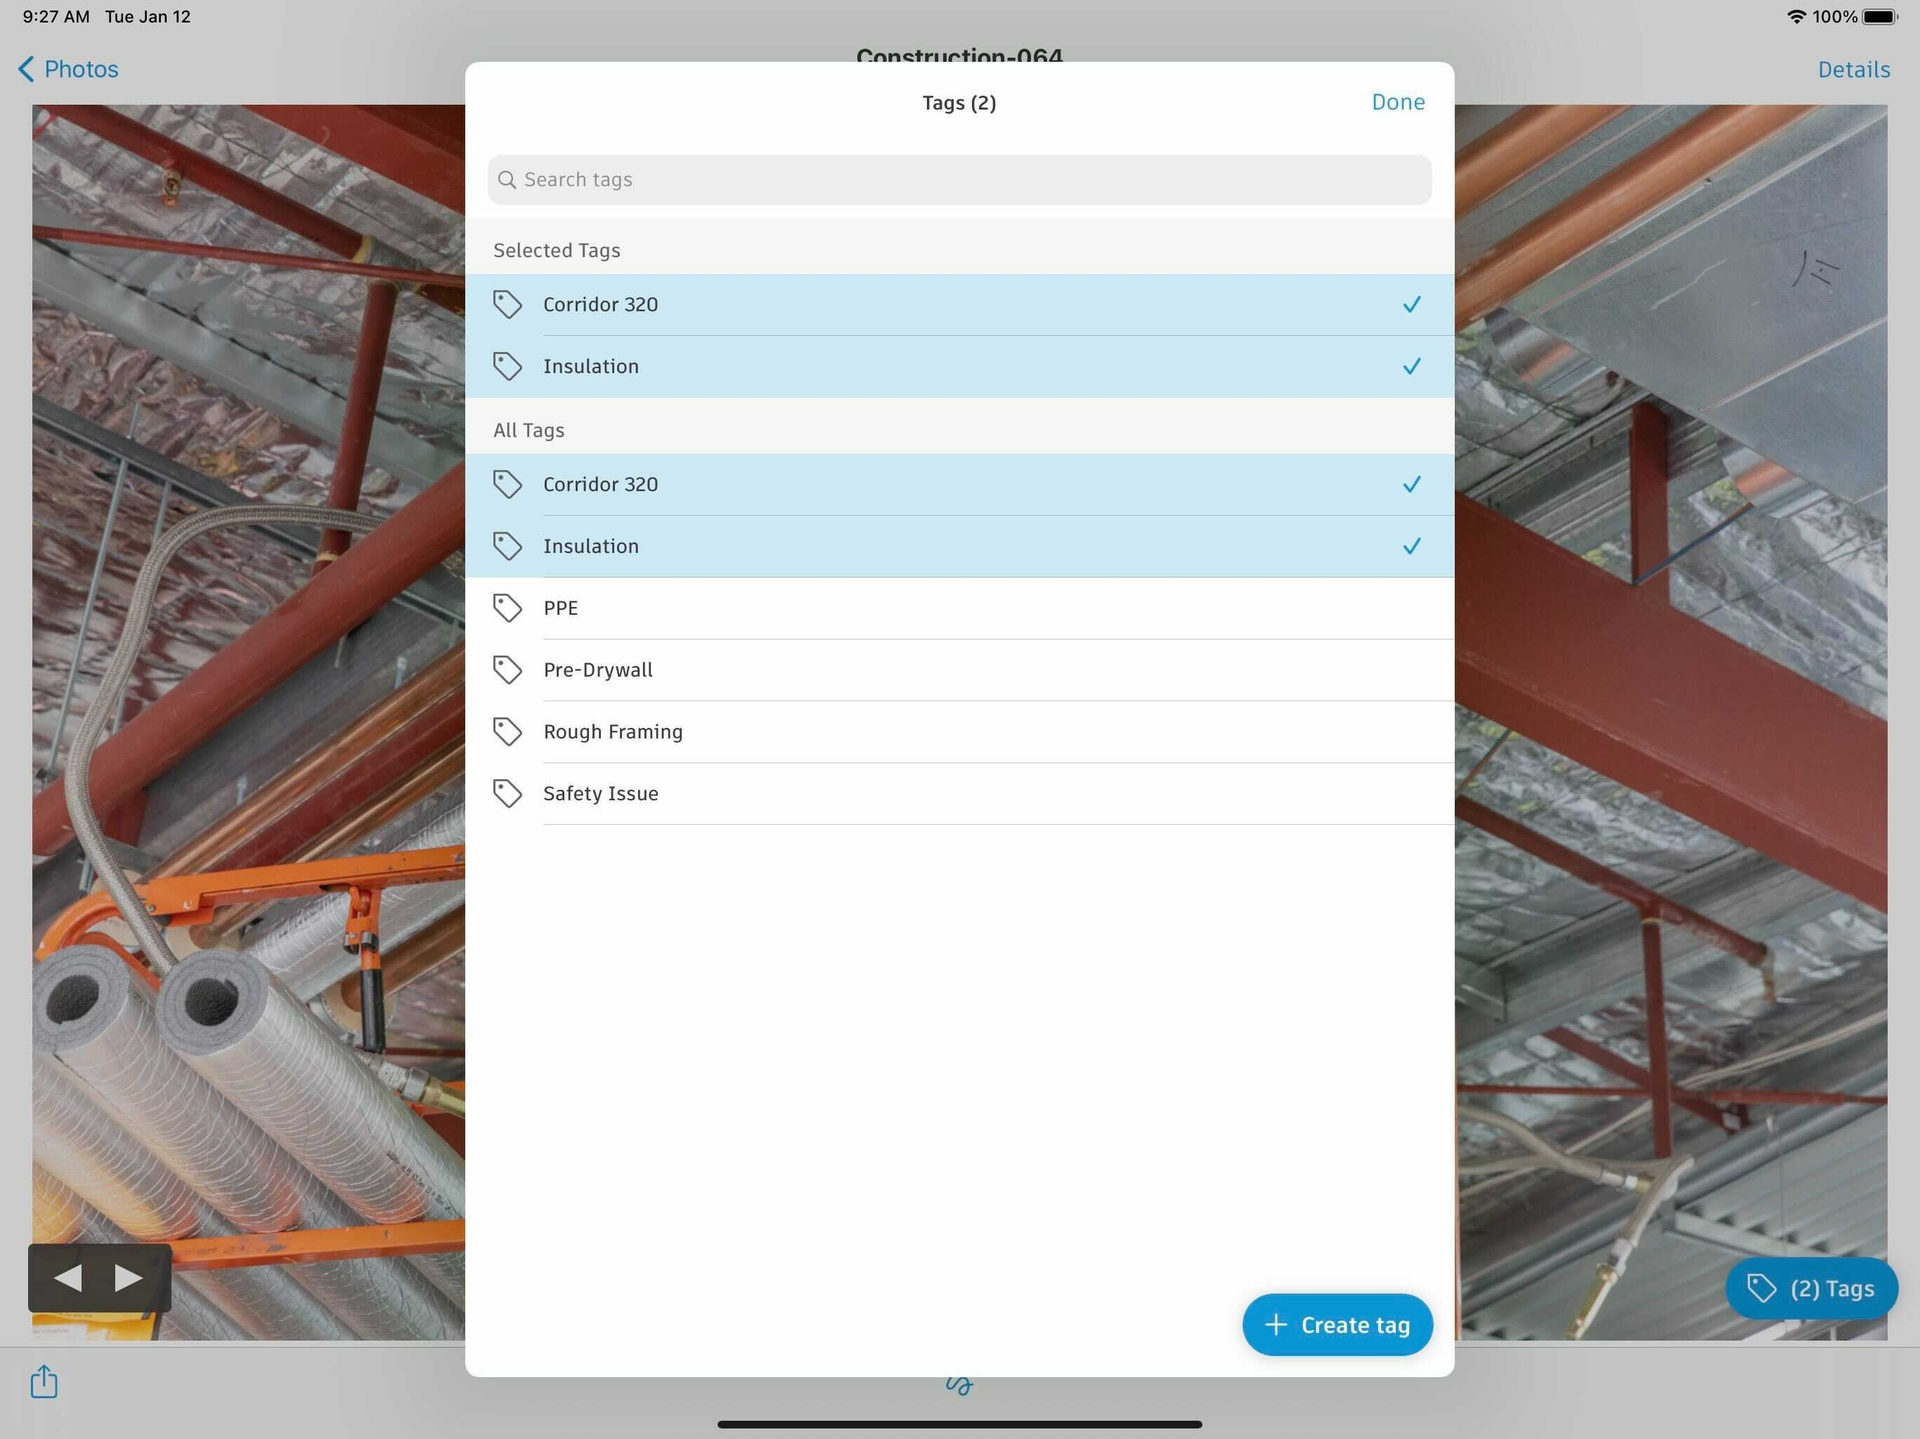 tagging or labeling jobsite photos inPhoto Management Software for Construction.